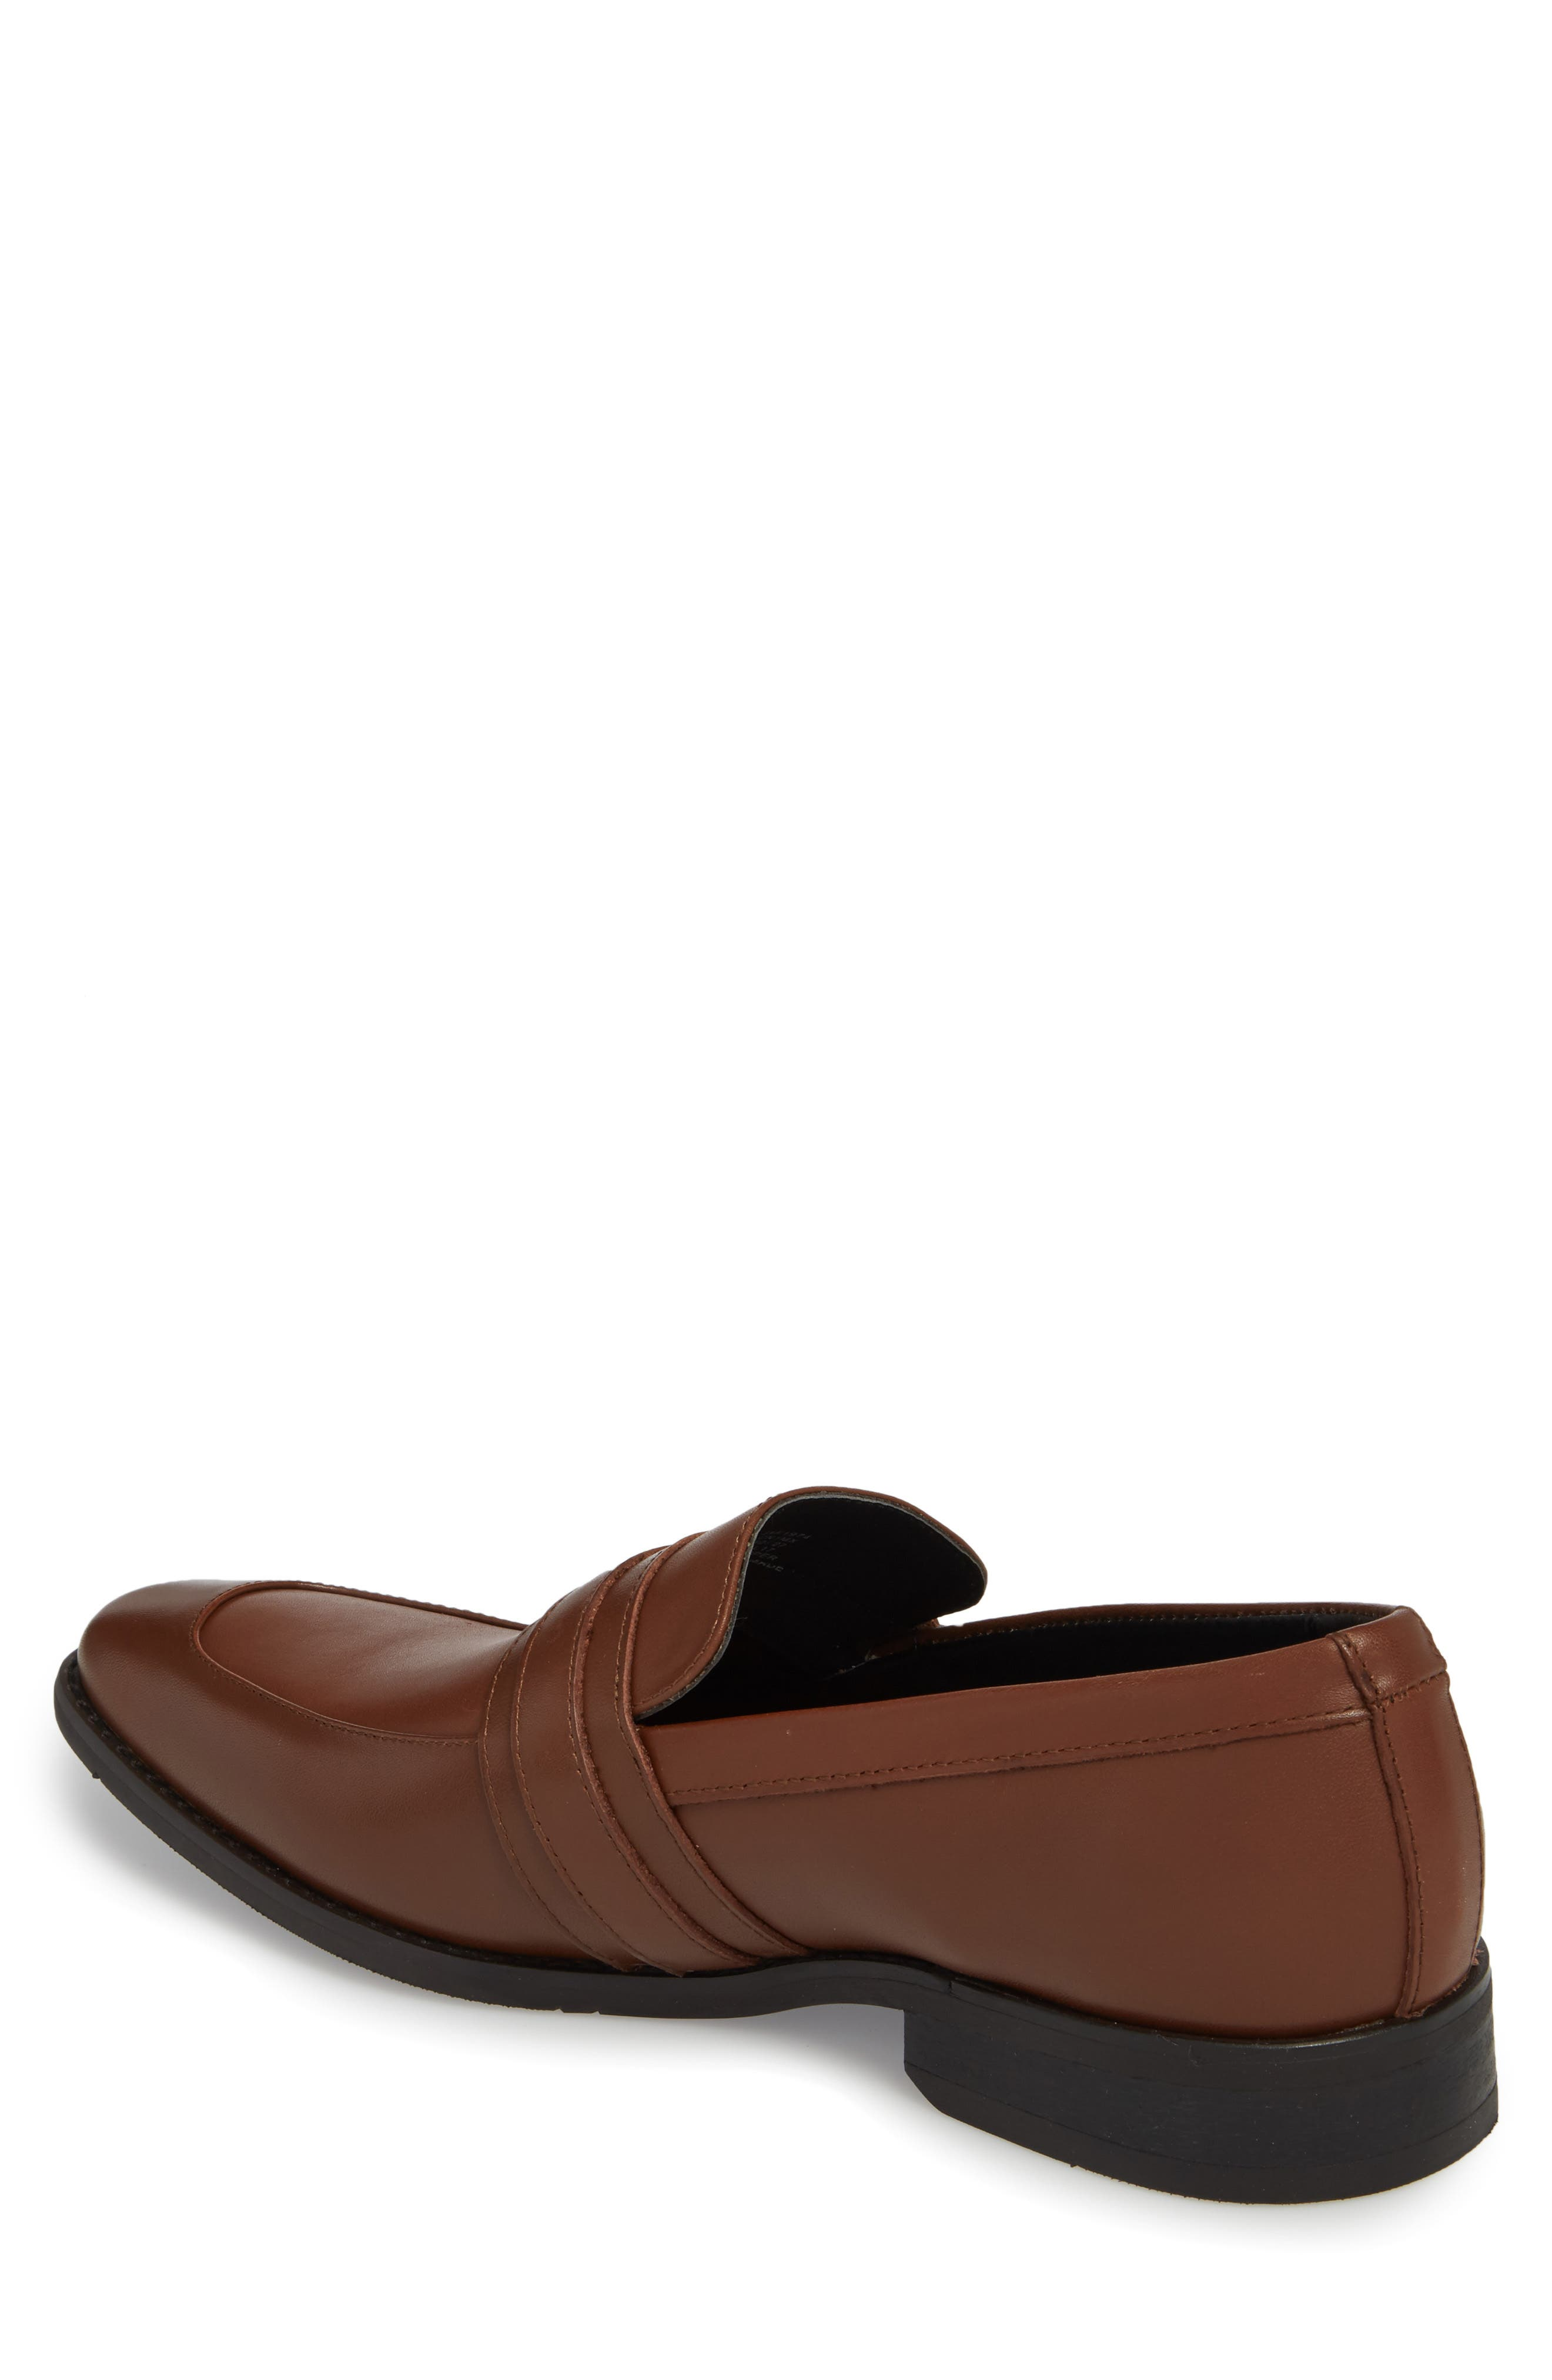 Reyes Loafer,                             Alternate thumbnail 2, color,                             Tan Leather